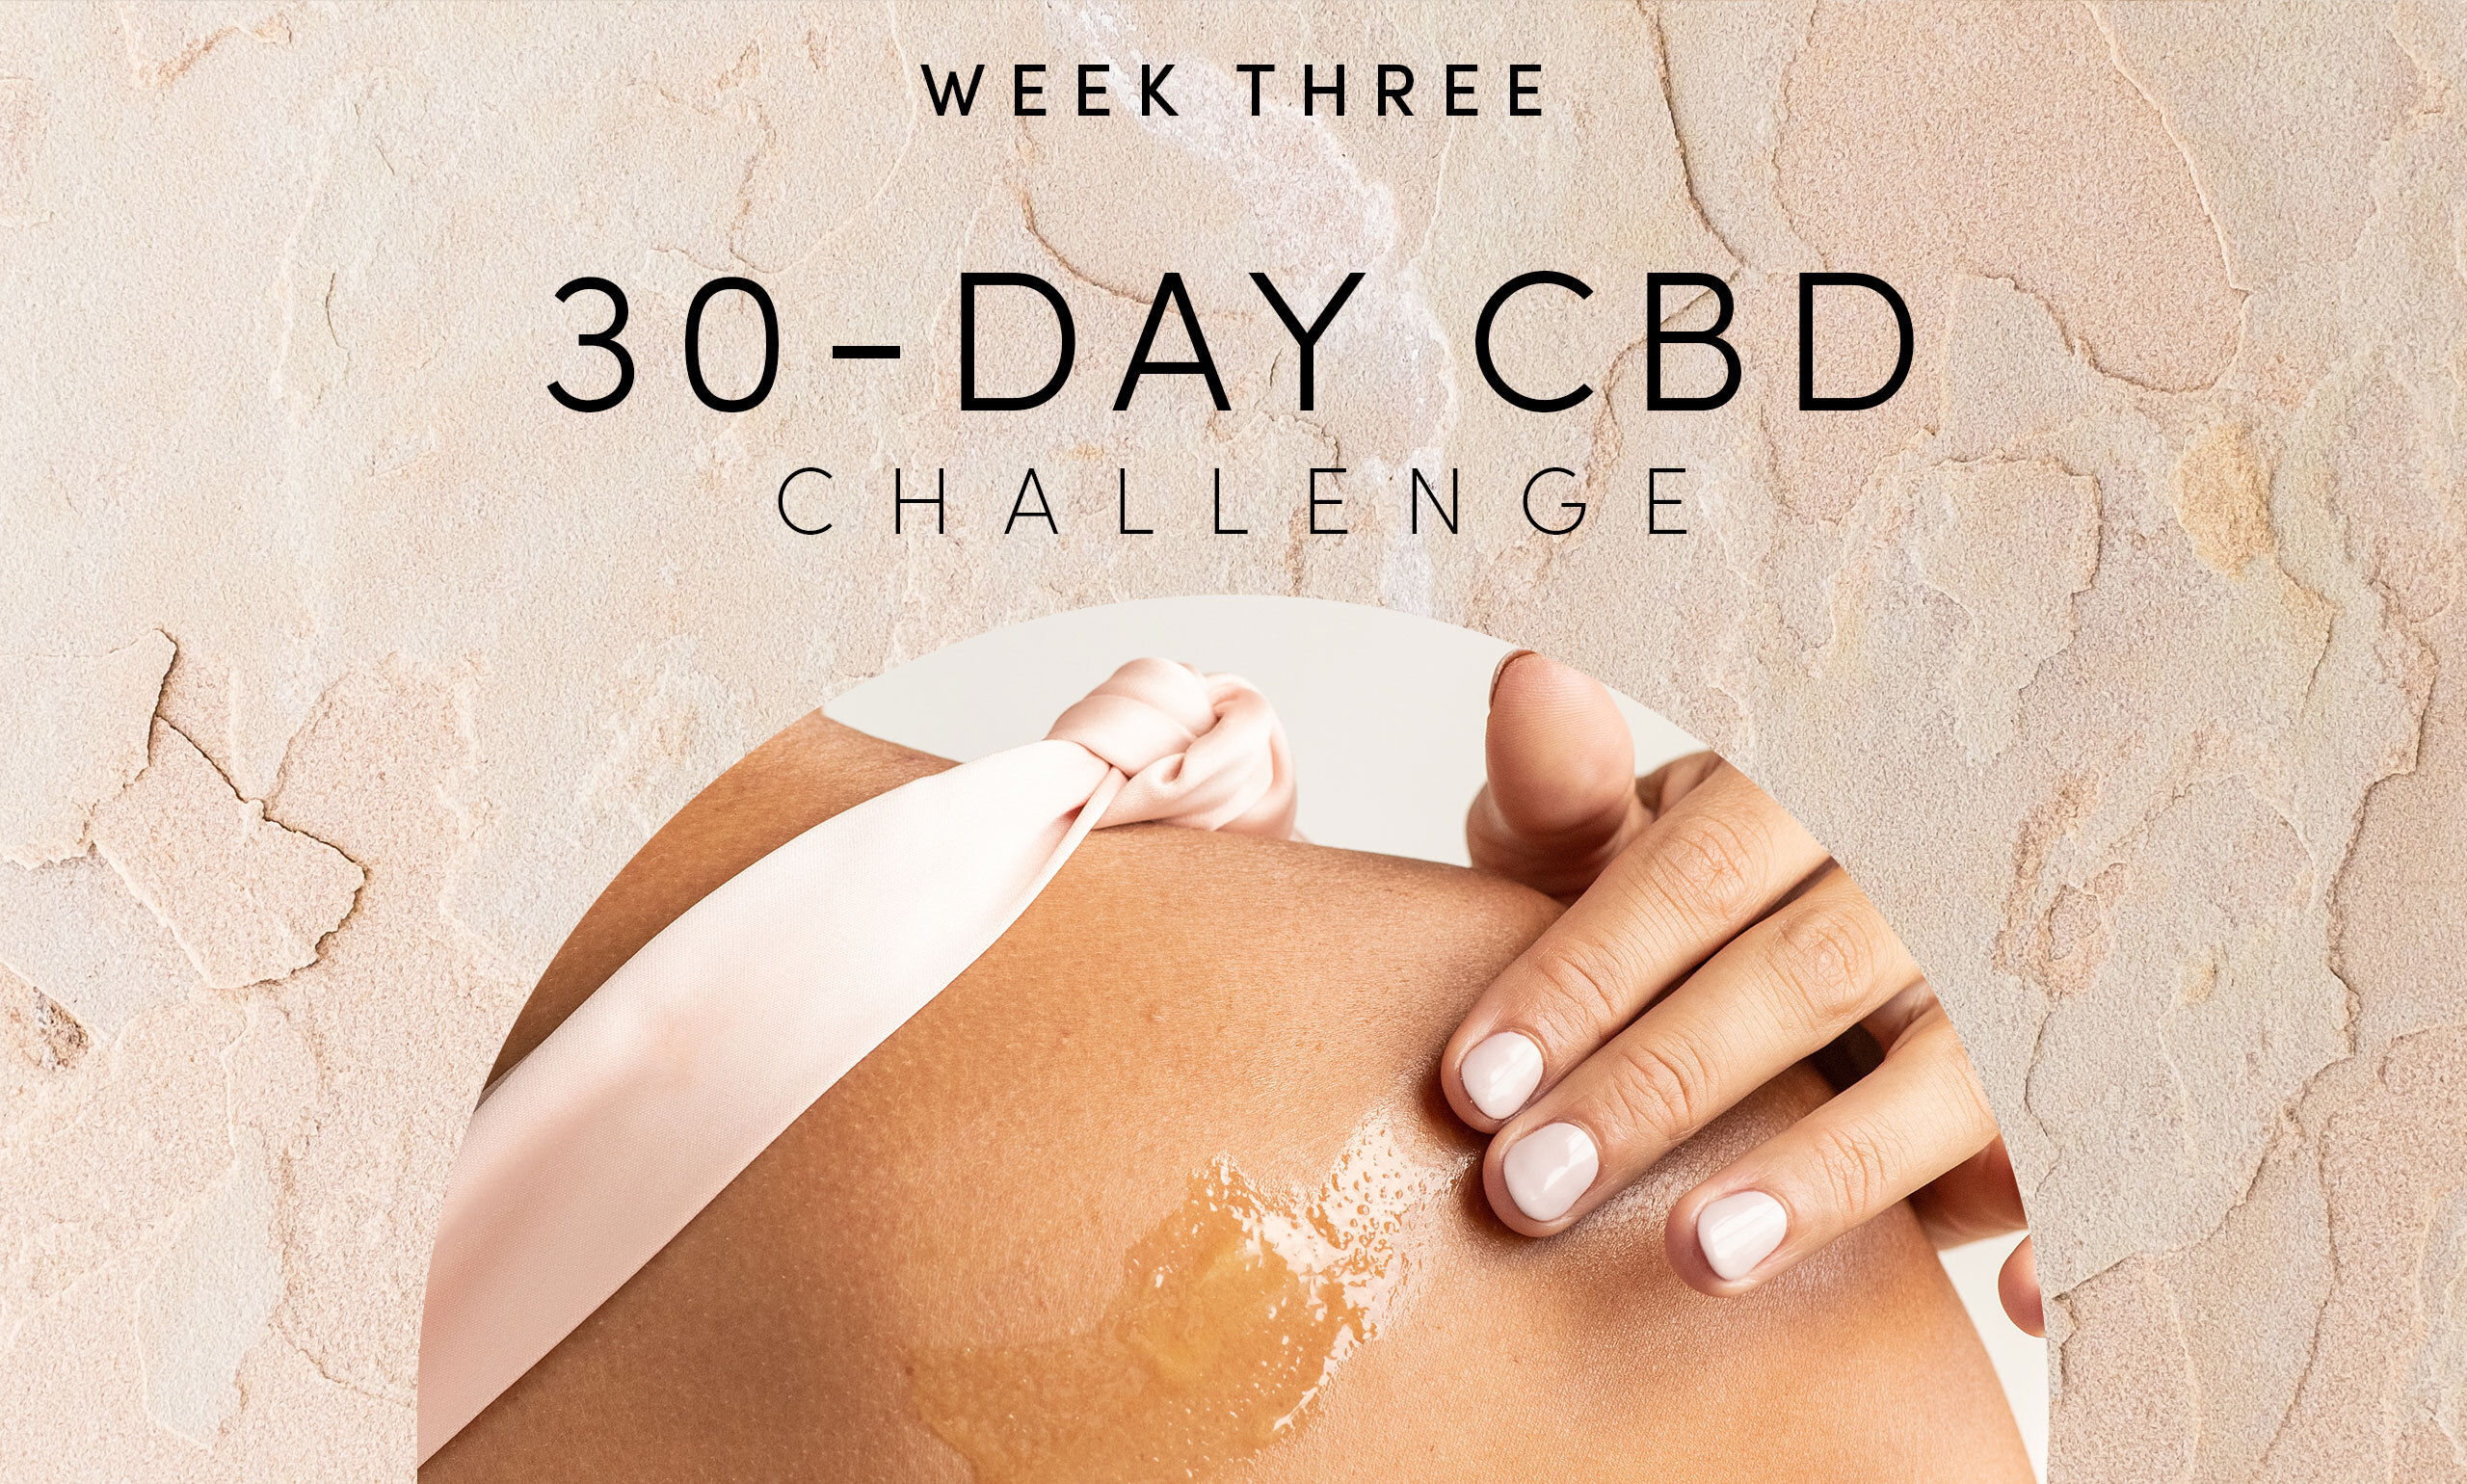 Week 3 Recap of Our 30-Day CBD Challenge